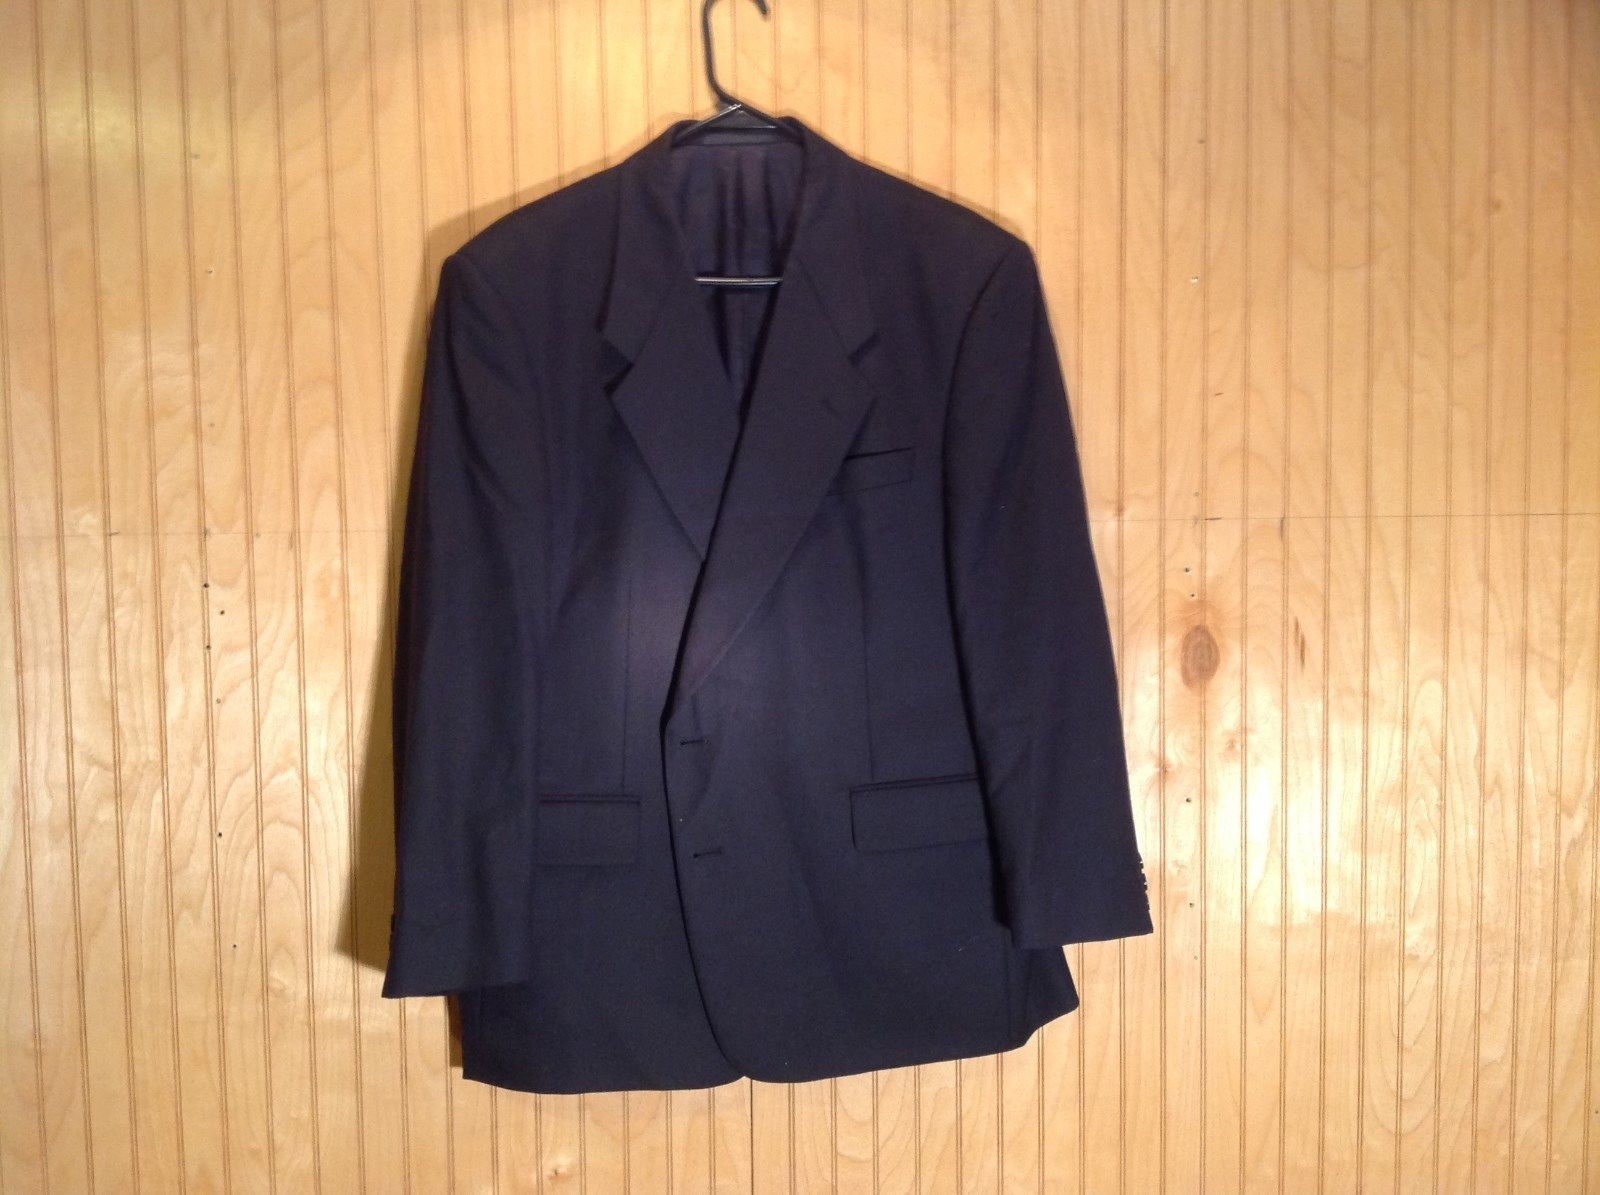 Black C H Oliver Sport Coat Size 40 Super 100s Luxury Wool Fabric